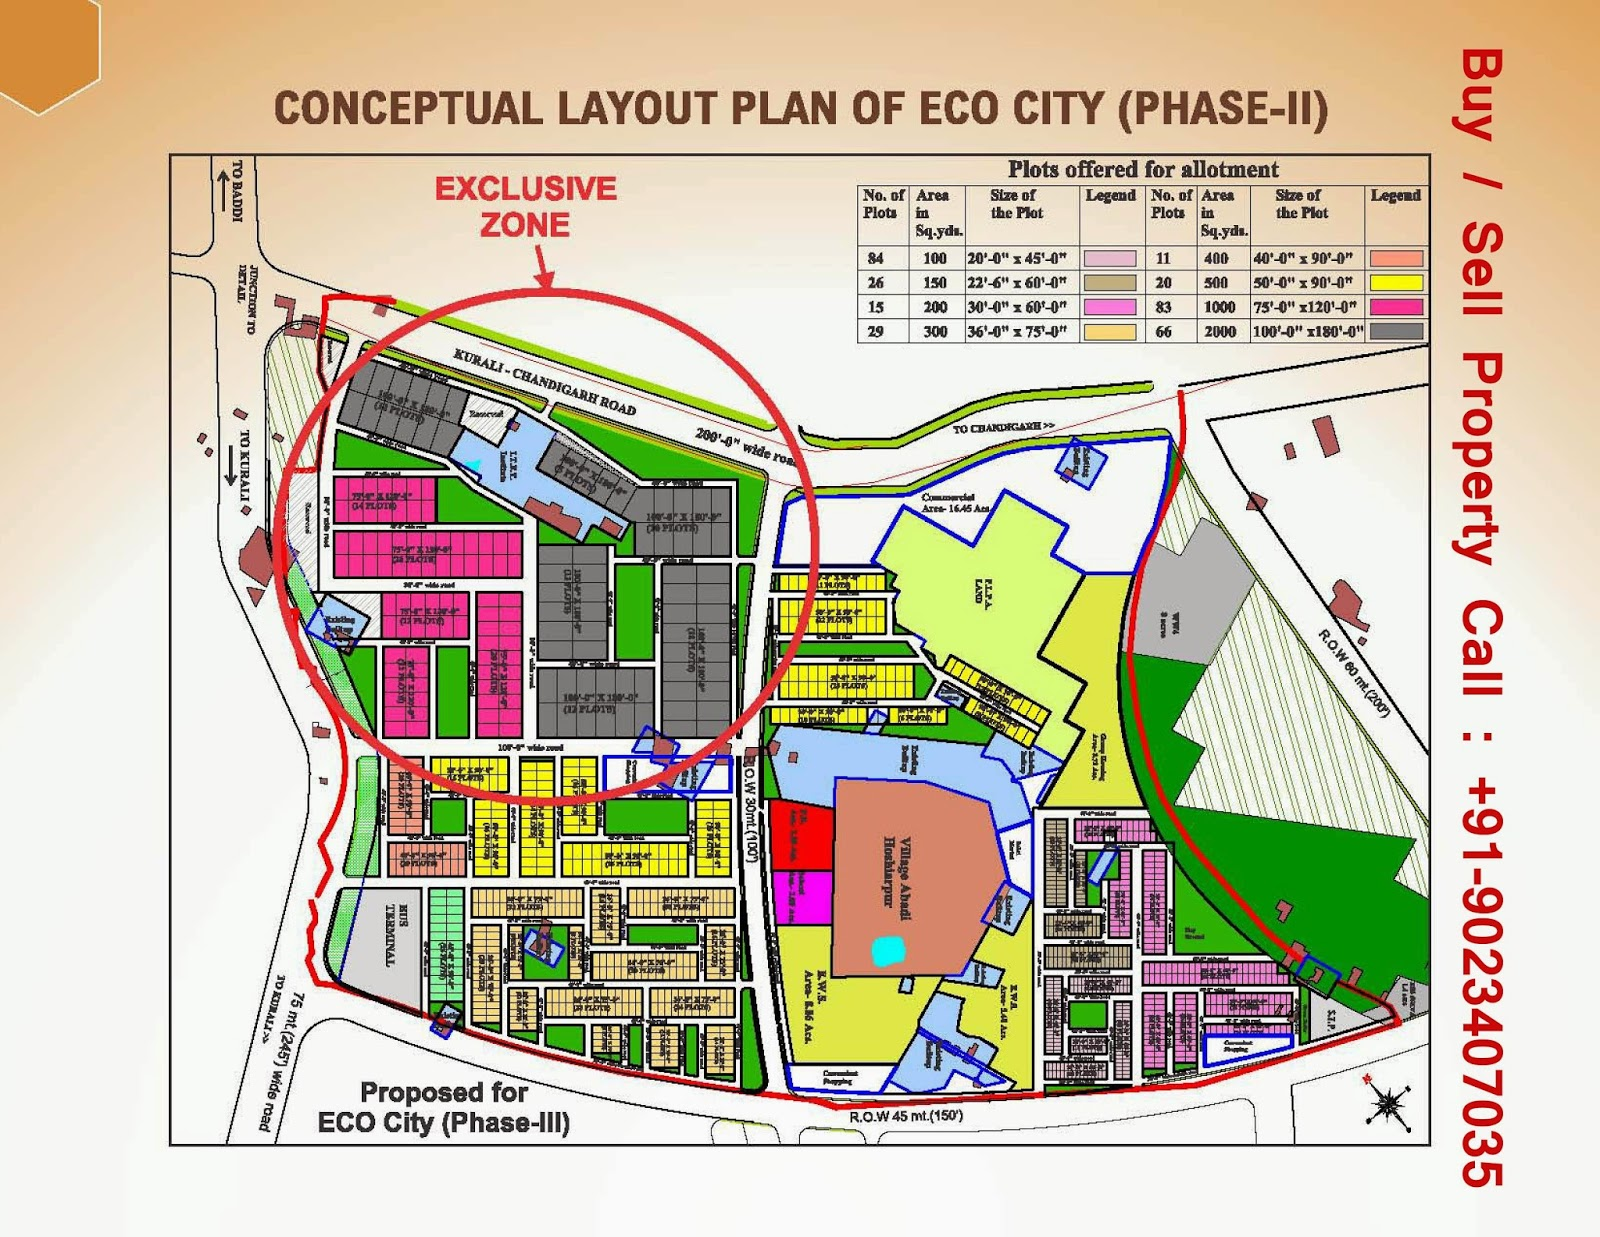 Ecocity Layout Plan For Phase-1 and Ecocity Phase-2 in Mullanpur Master Plan.  Contact for Any Query: +91-90234-07035